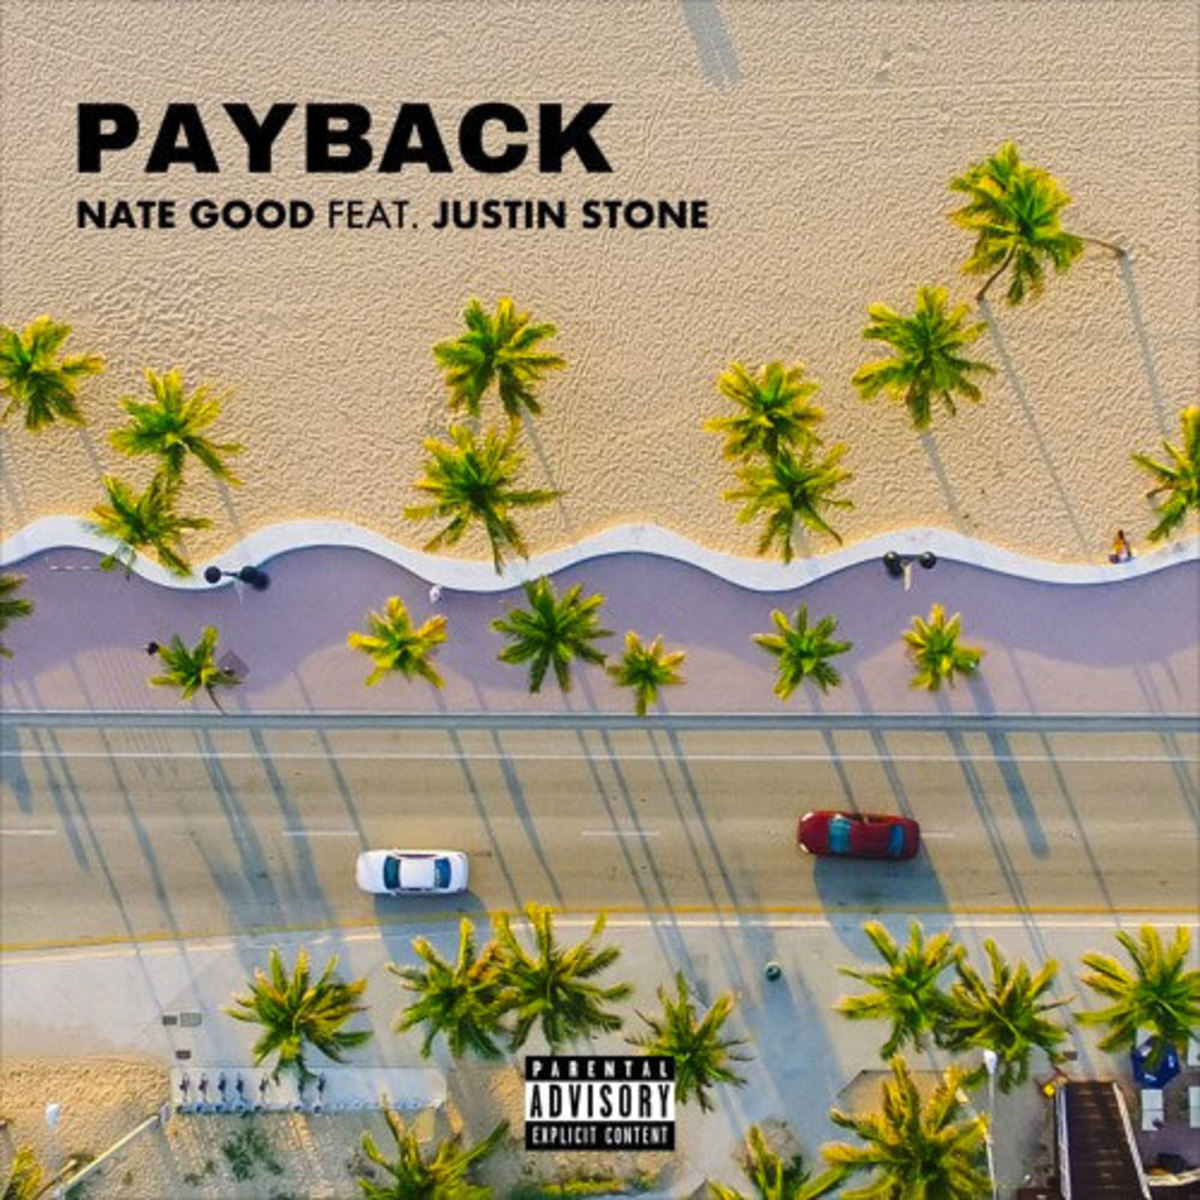 nate-good-payback.jpg